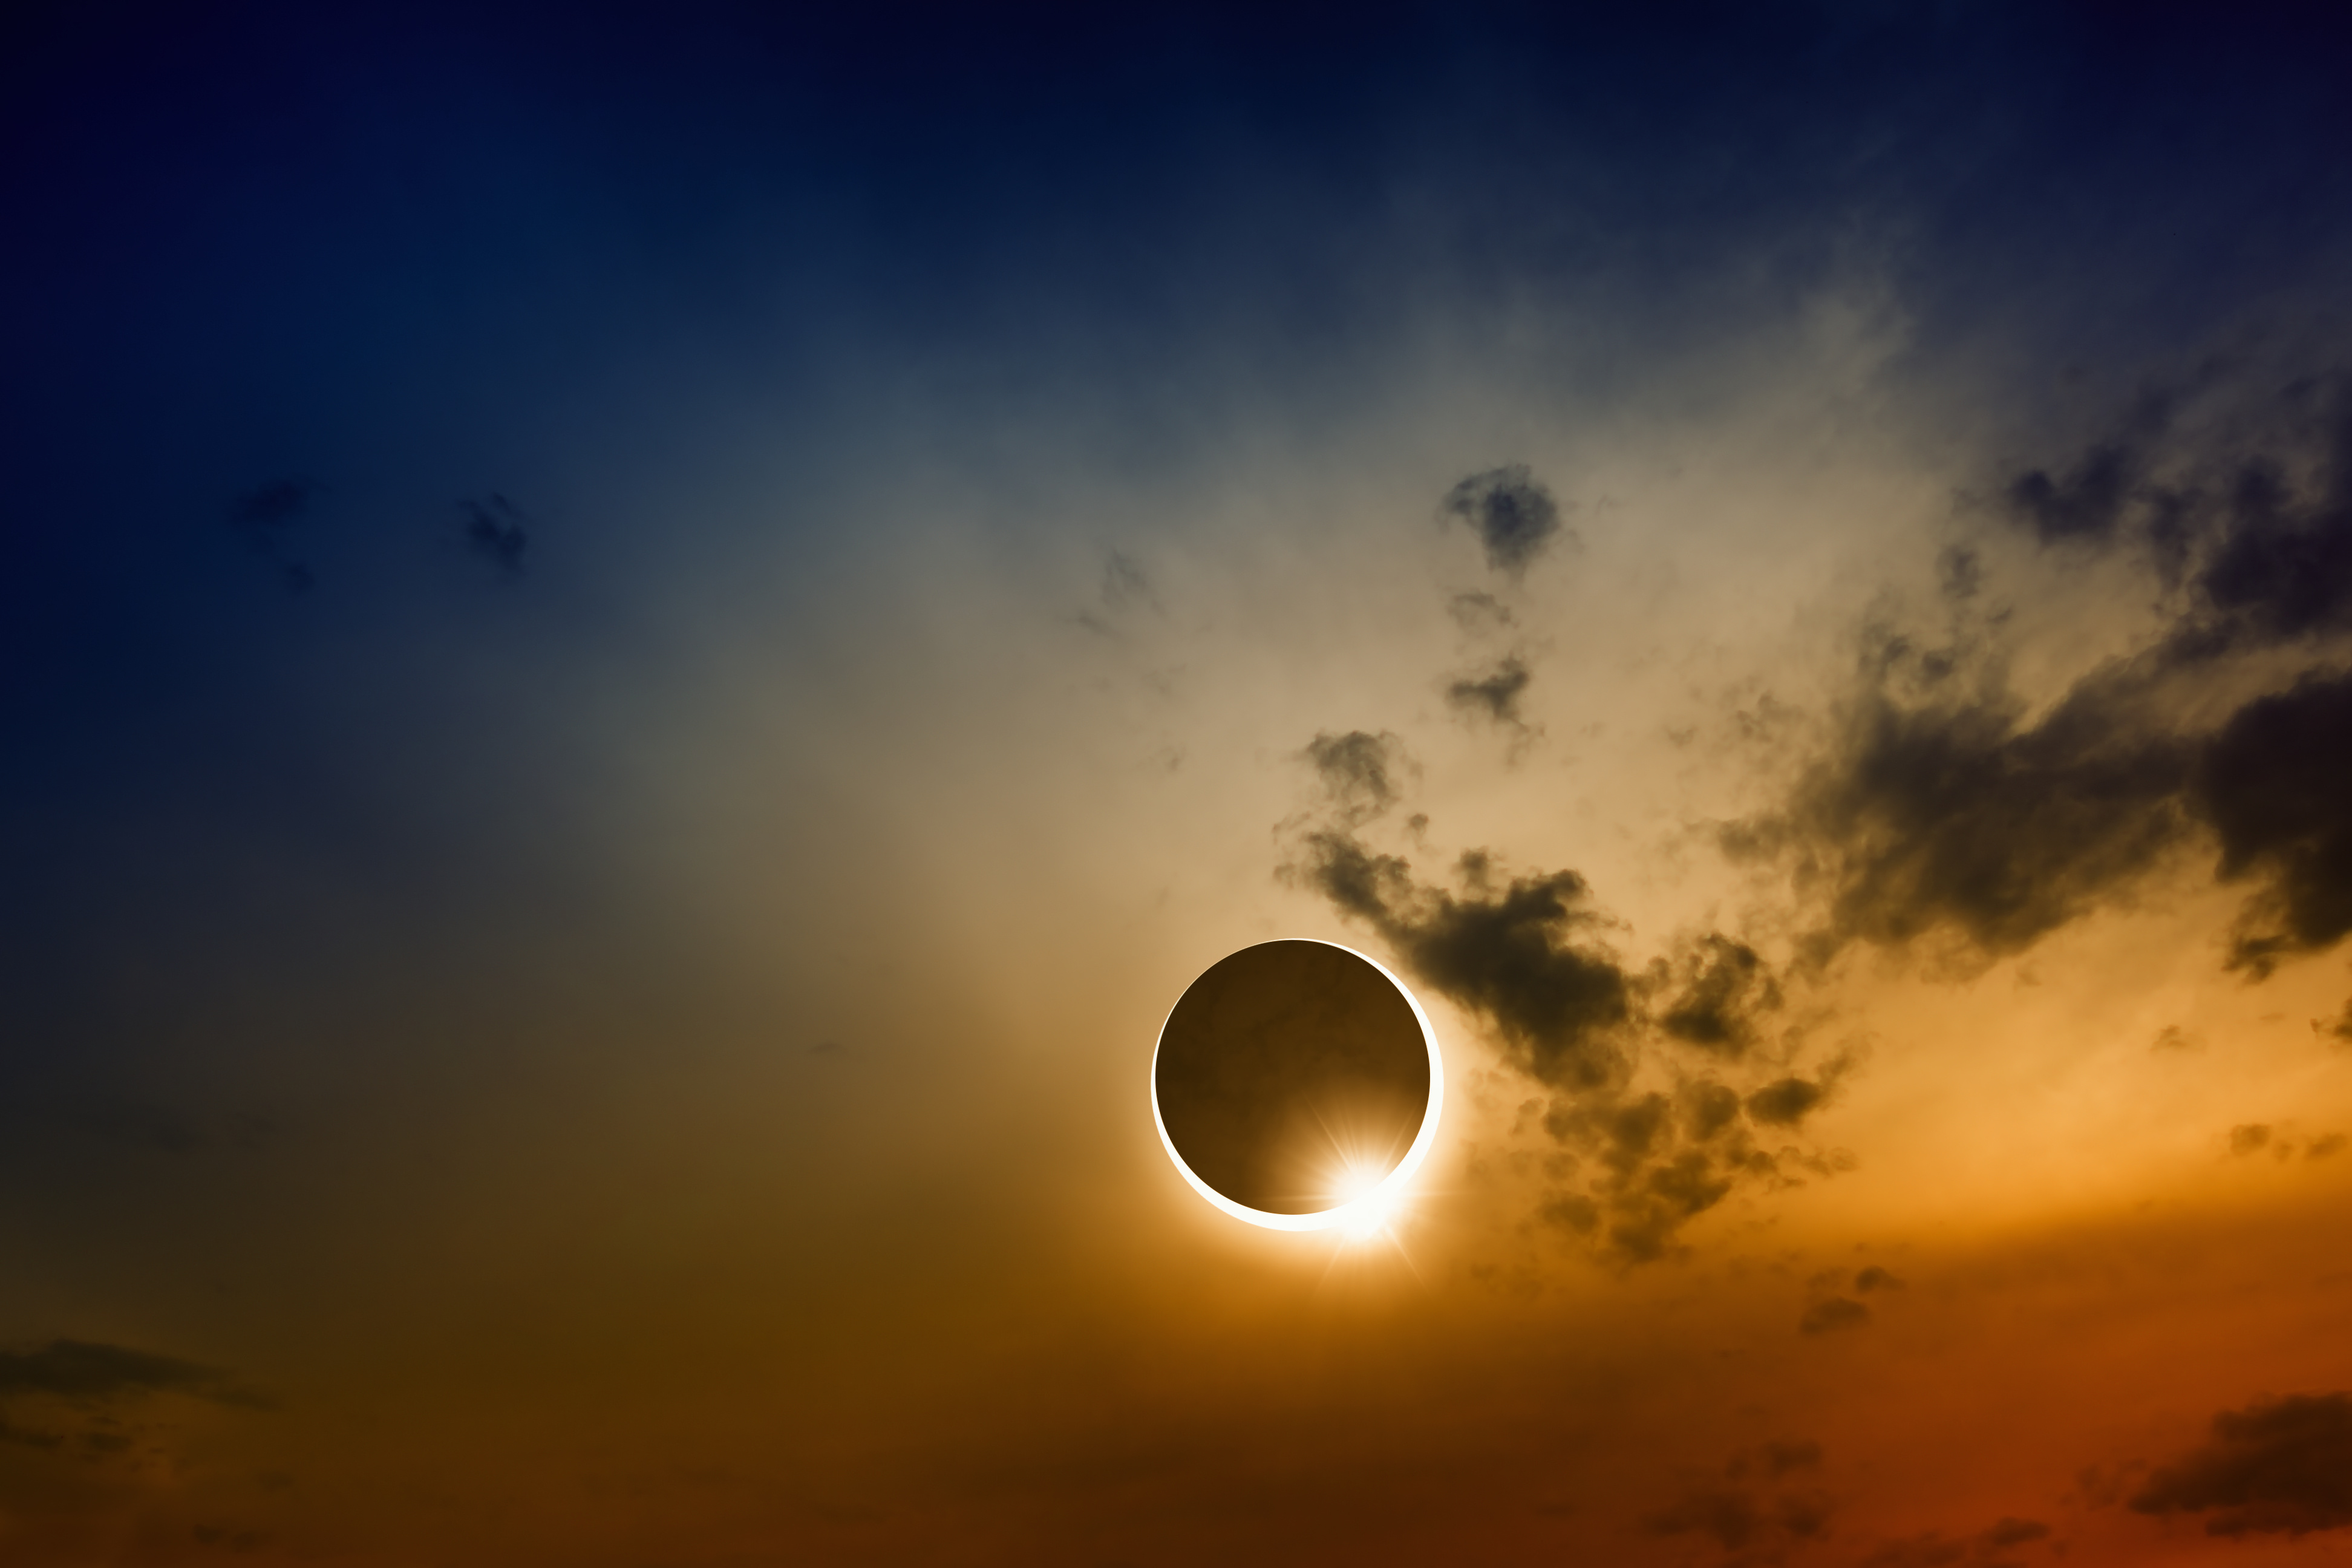 Total eclipse of the sun behind the moon